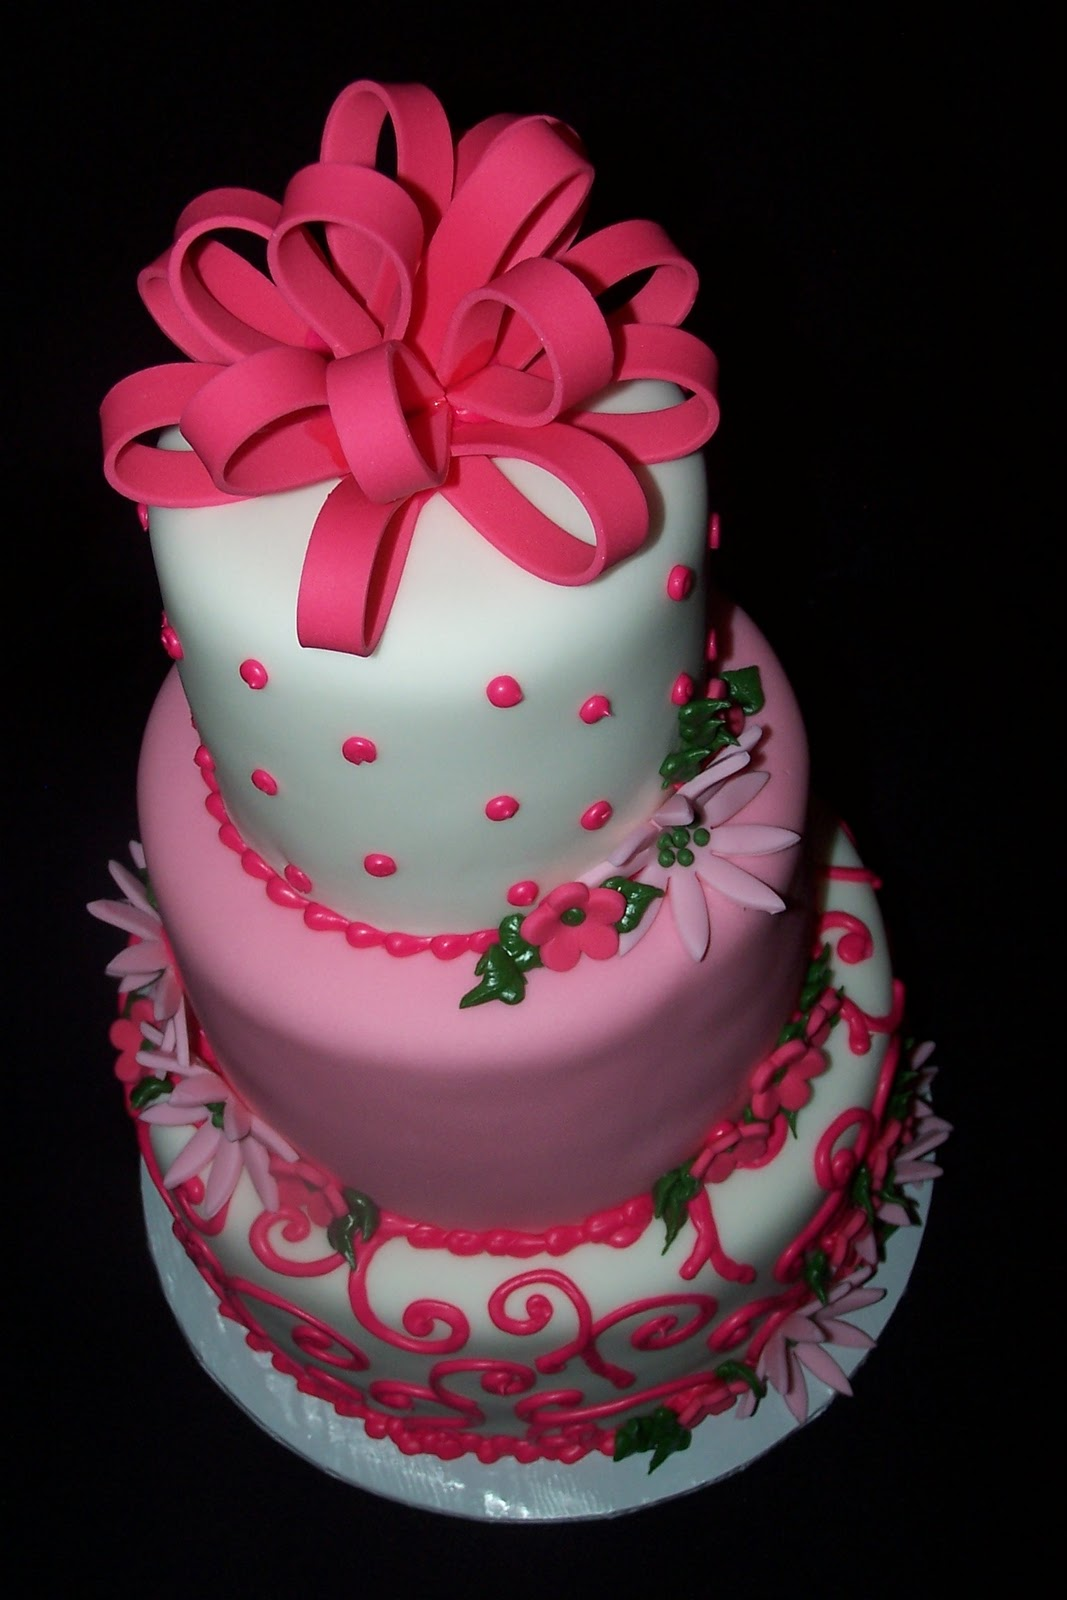 7 Year Old Birthday Cakes http://abocakesandcookies.blogspot.com/2010/11/1-year-old-birthday-cake.html